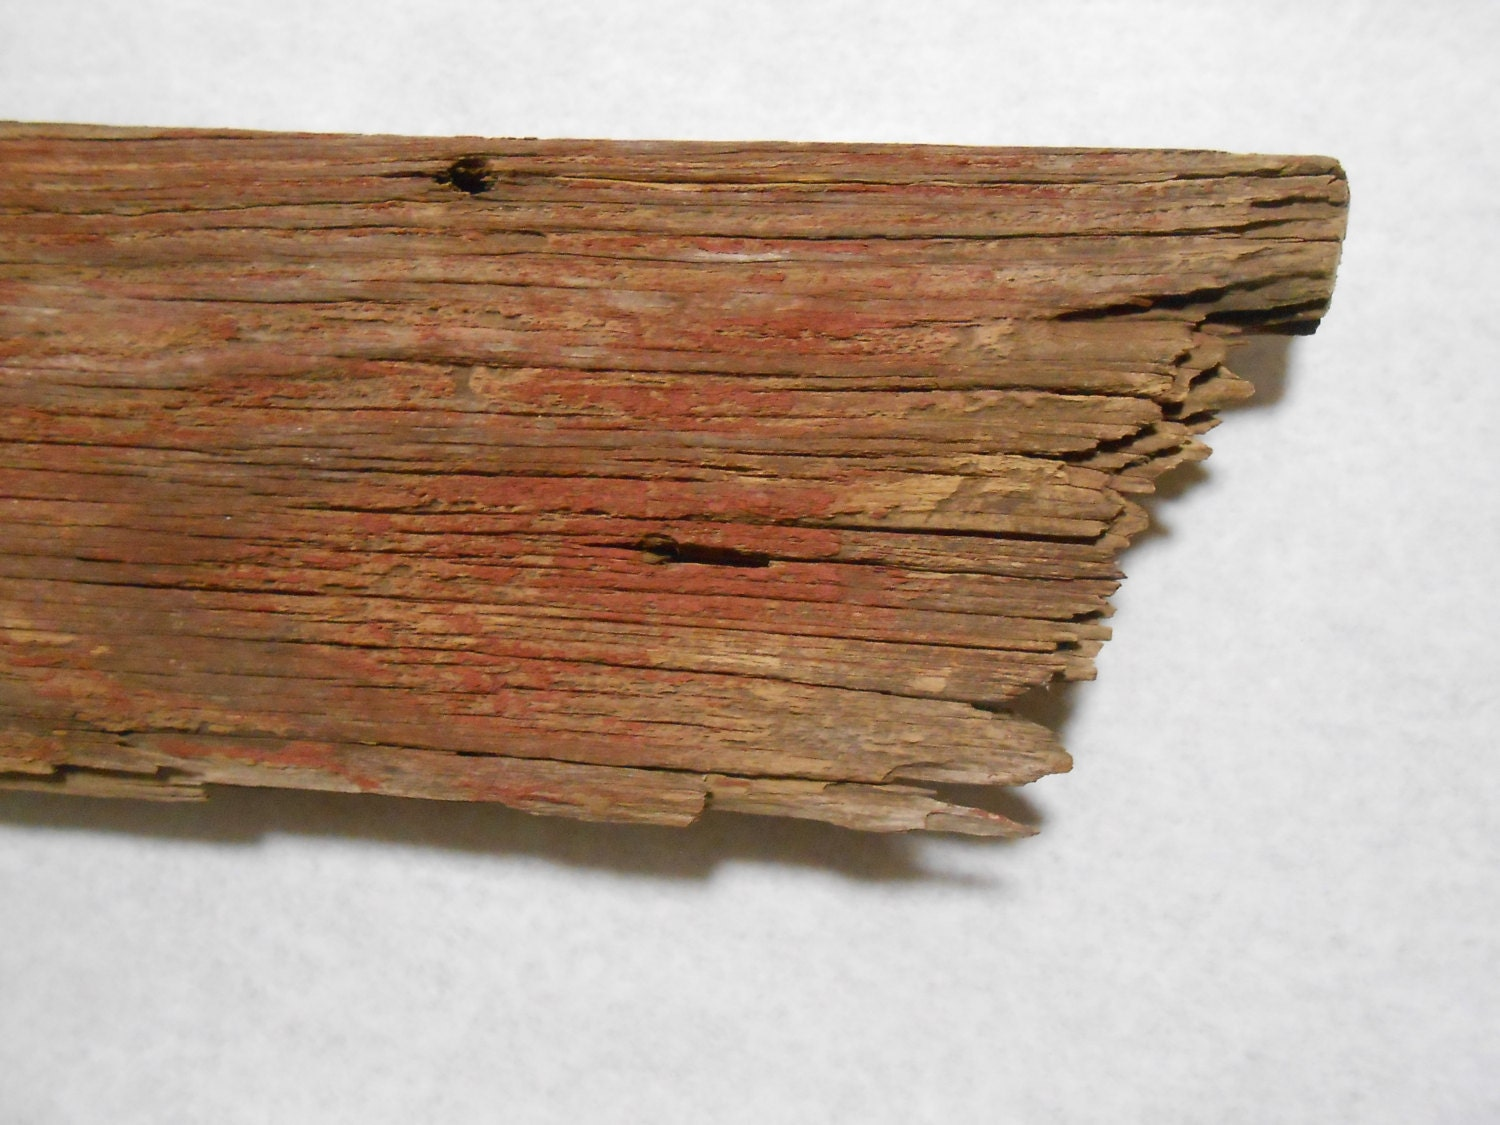 Rustic reclaimed weathered barnwood blank plank board lumber for Recycled wood board